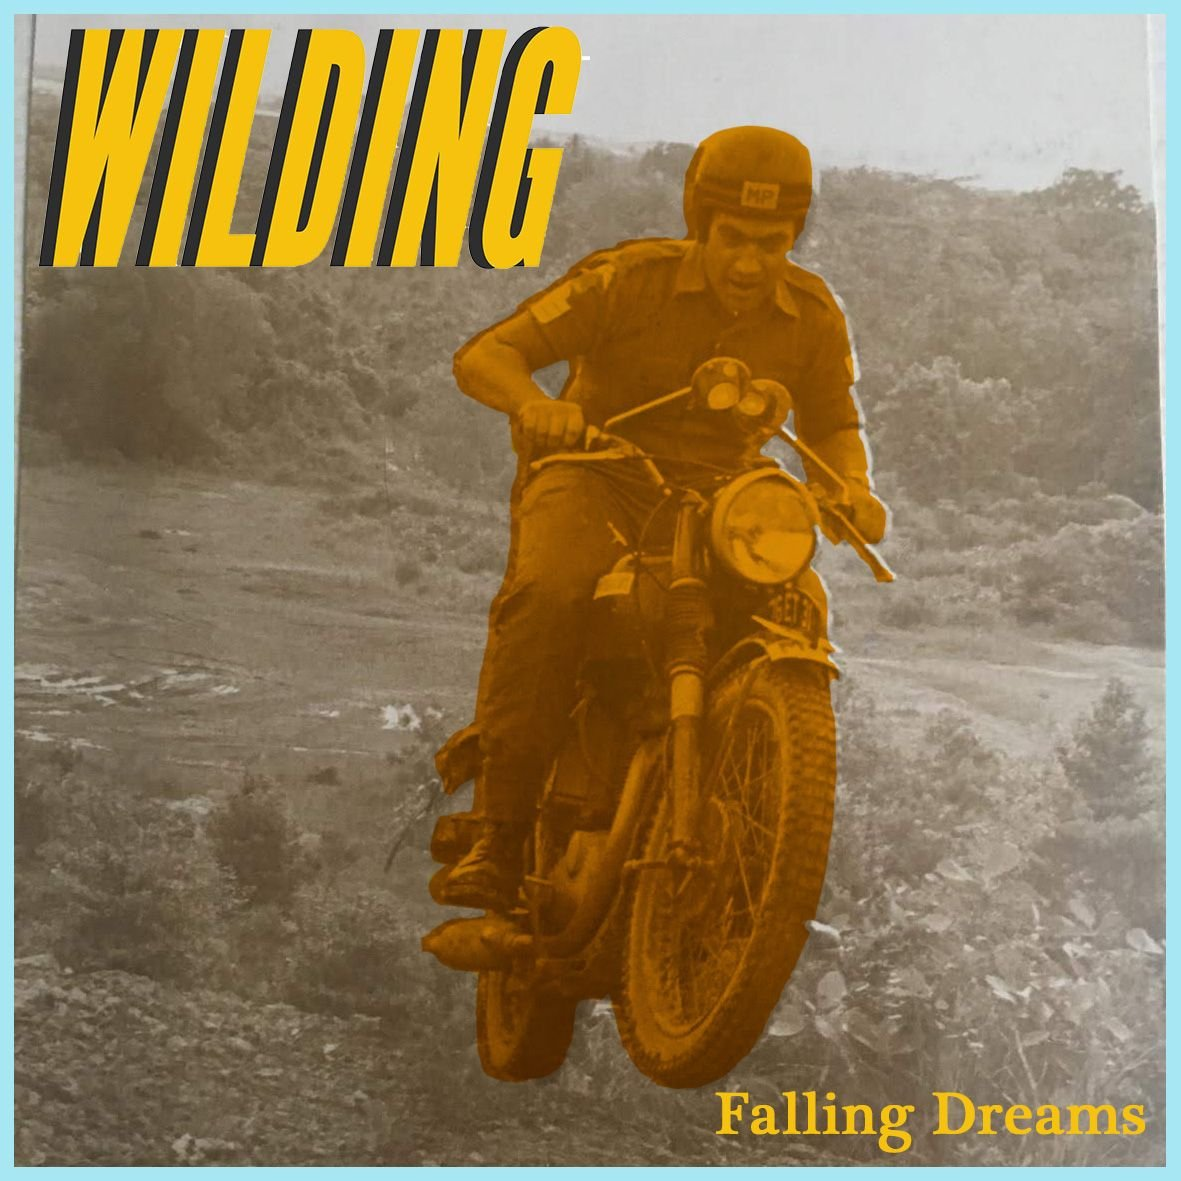 The Return of Wilding; Falling Dreams